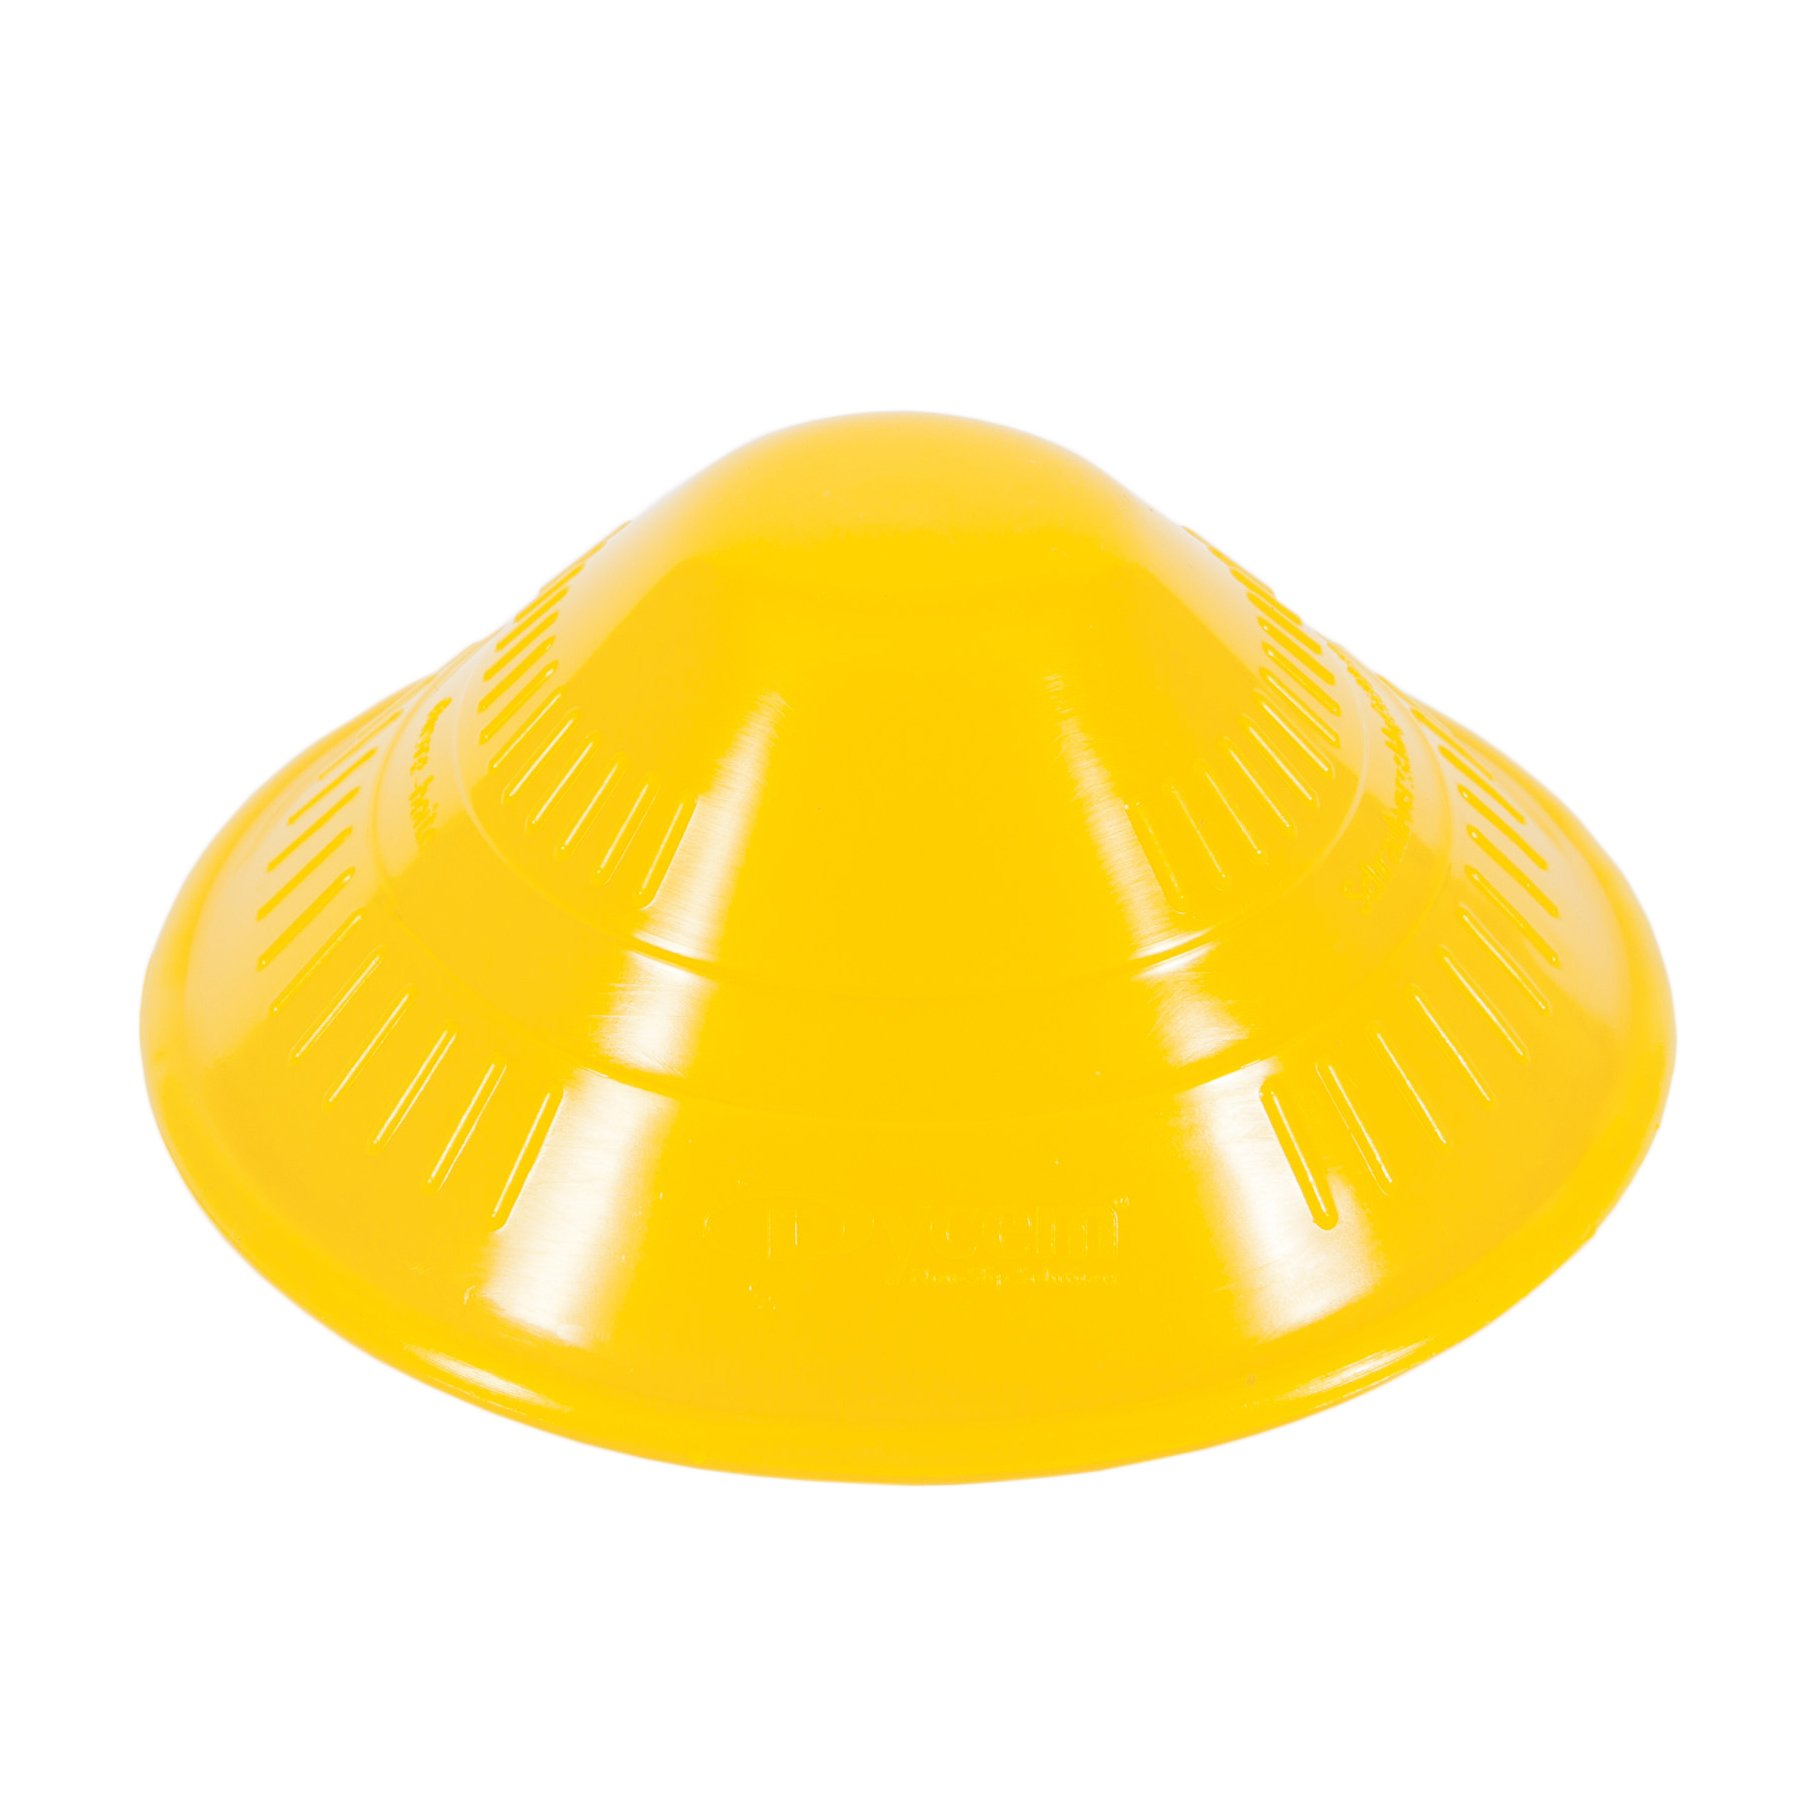 Dycem 50-1650Y Non-Slip Cone-Shaped Jar Opener, 4-1/2'' Diameter, Yellow by Dycem (Image #1)